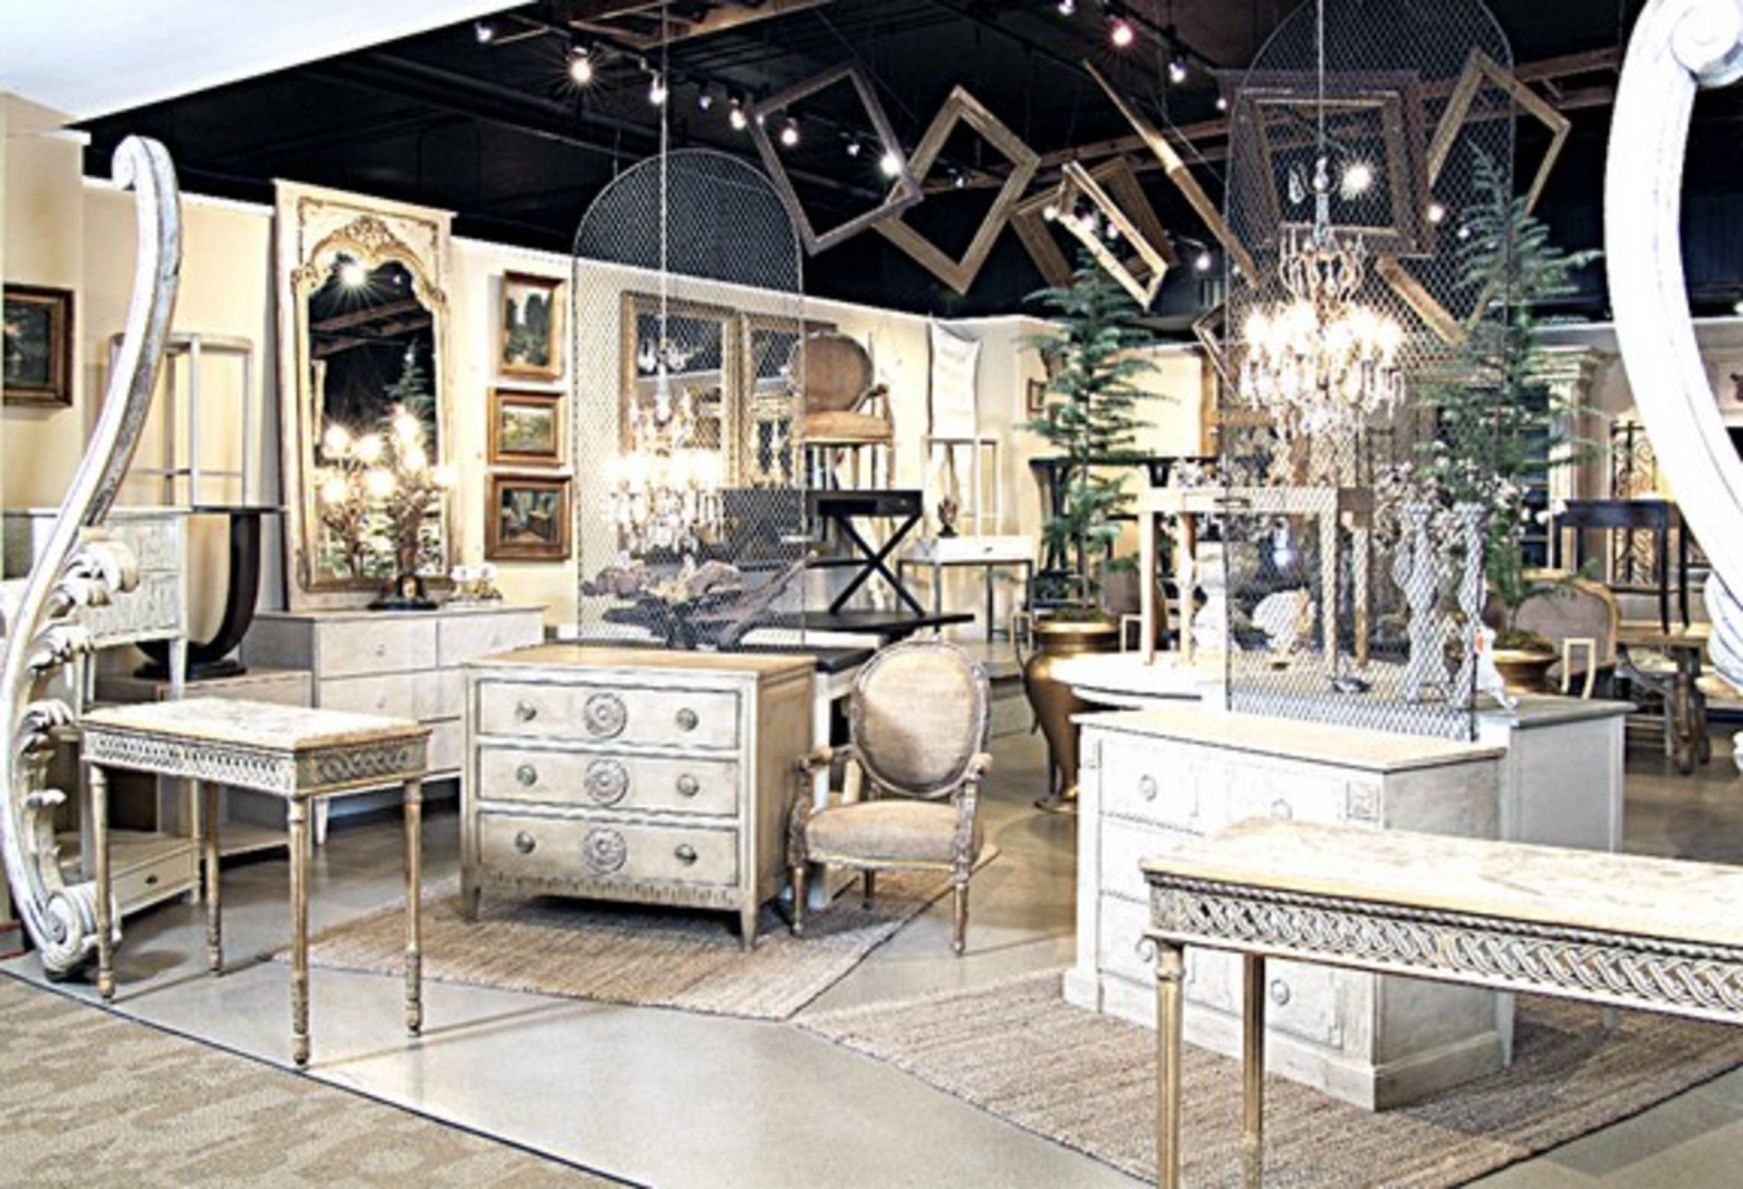 Tritter Feefer Home Collection: Furniture With A Custom, Unique Feel Opens  In Alpharetta